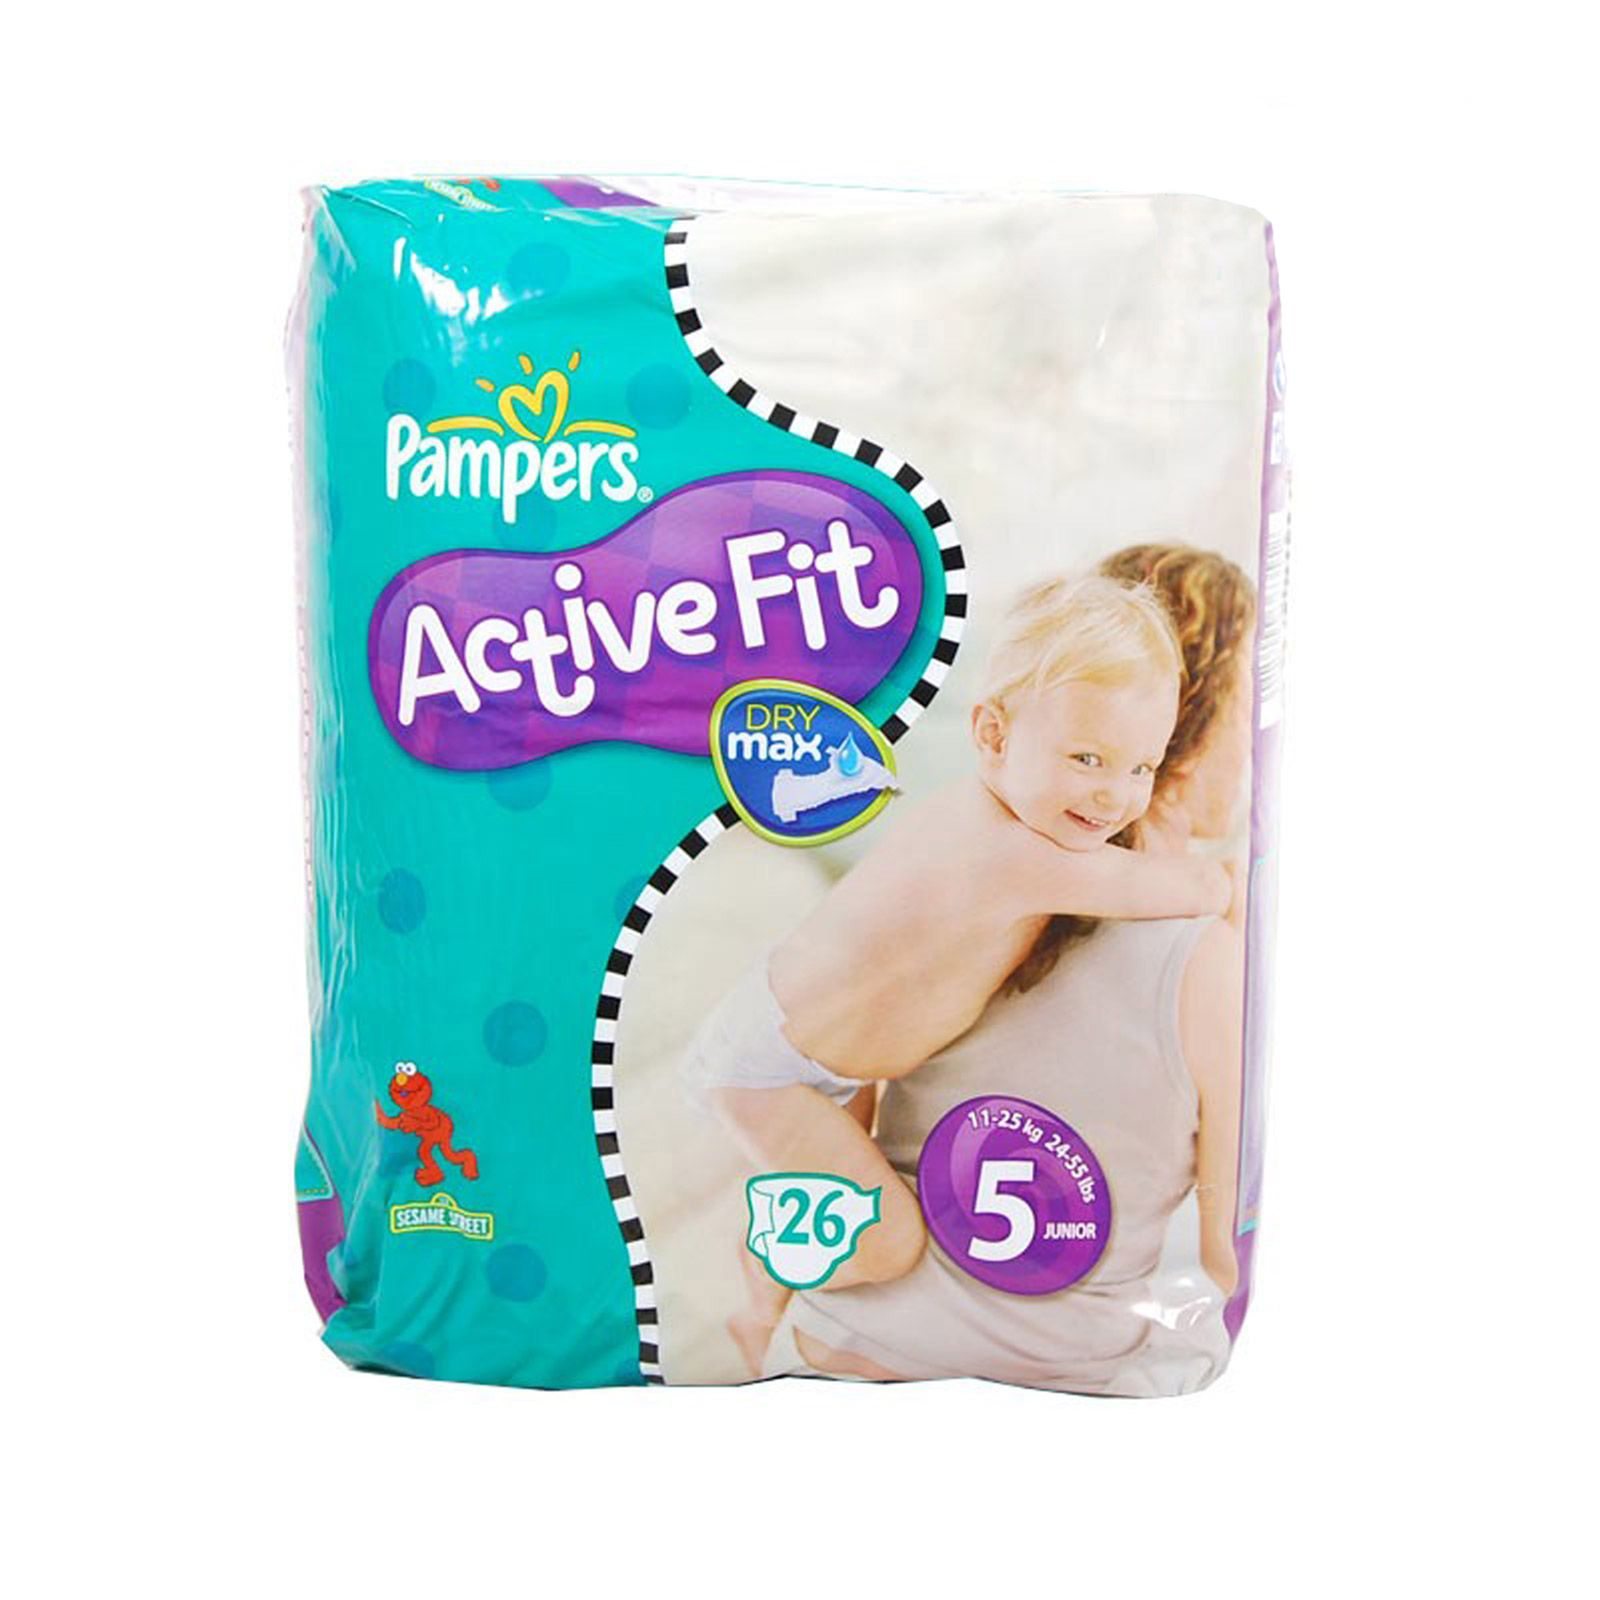 Pampers Adult 53